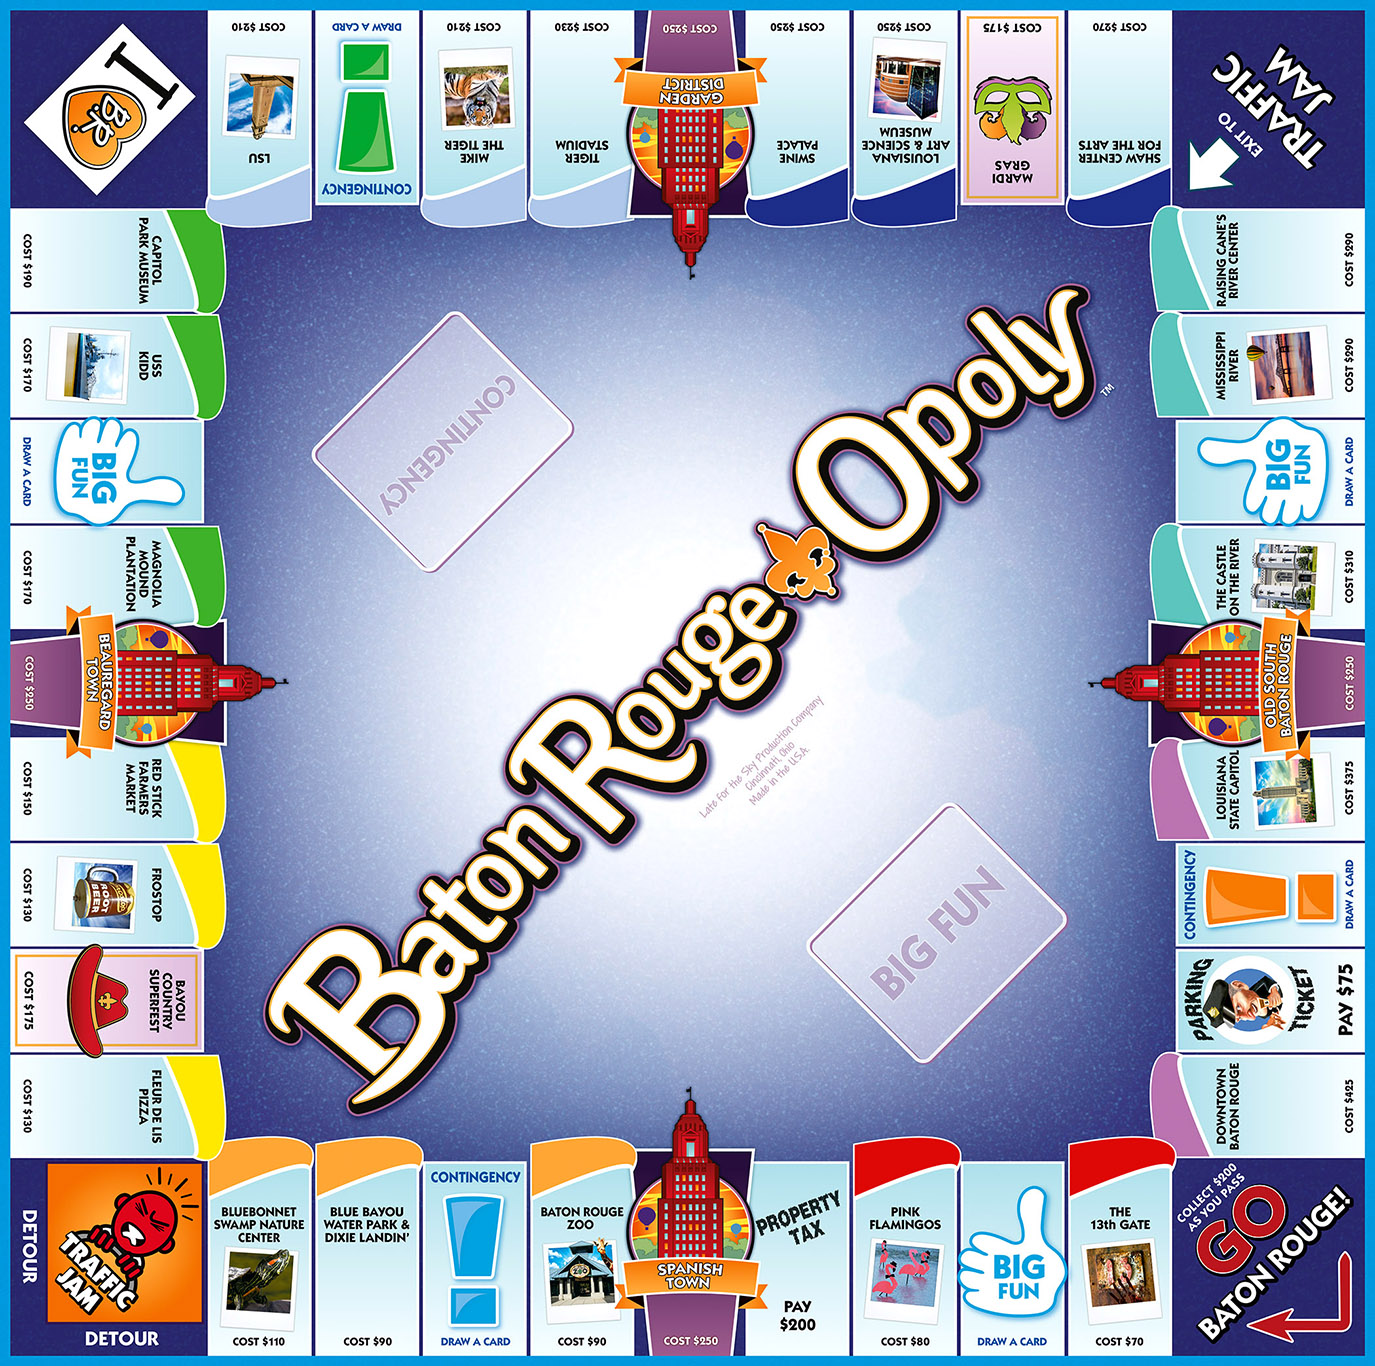 Mayberry-opoly Property Trading Game Monopoly Andy Griffith Show 2007